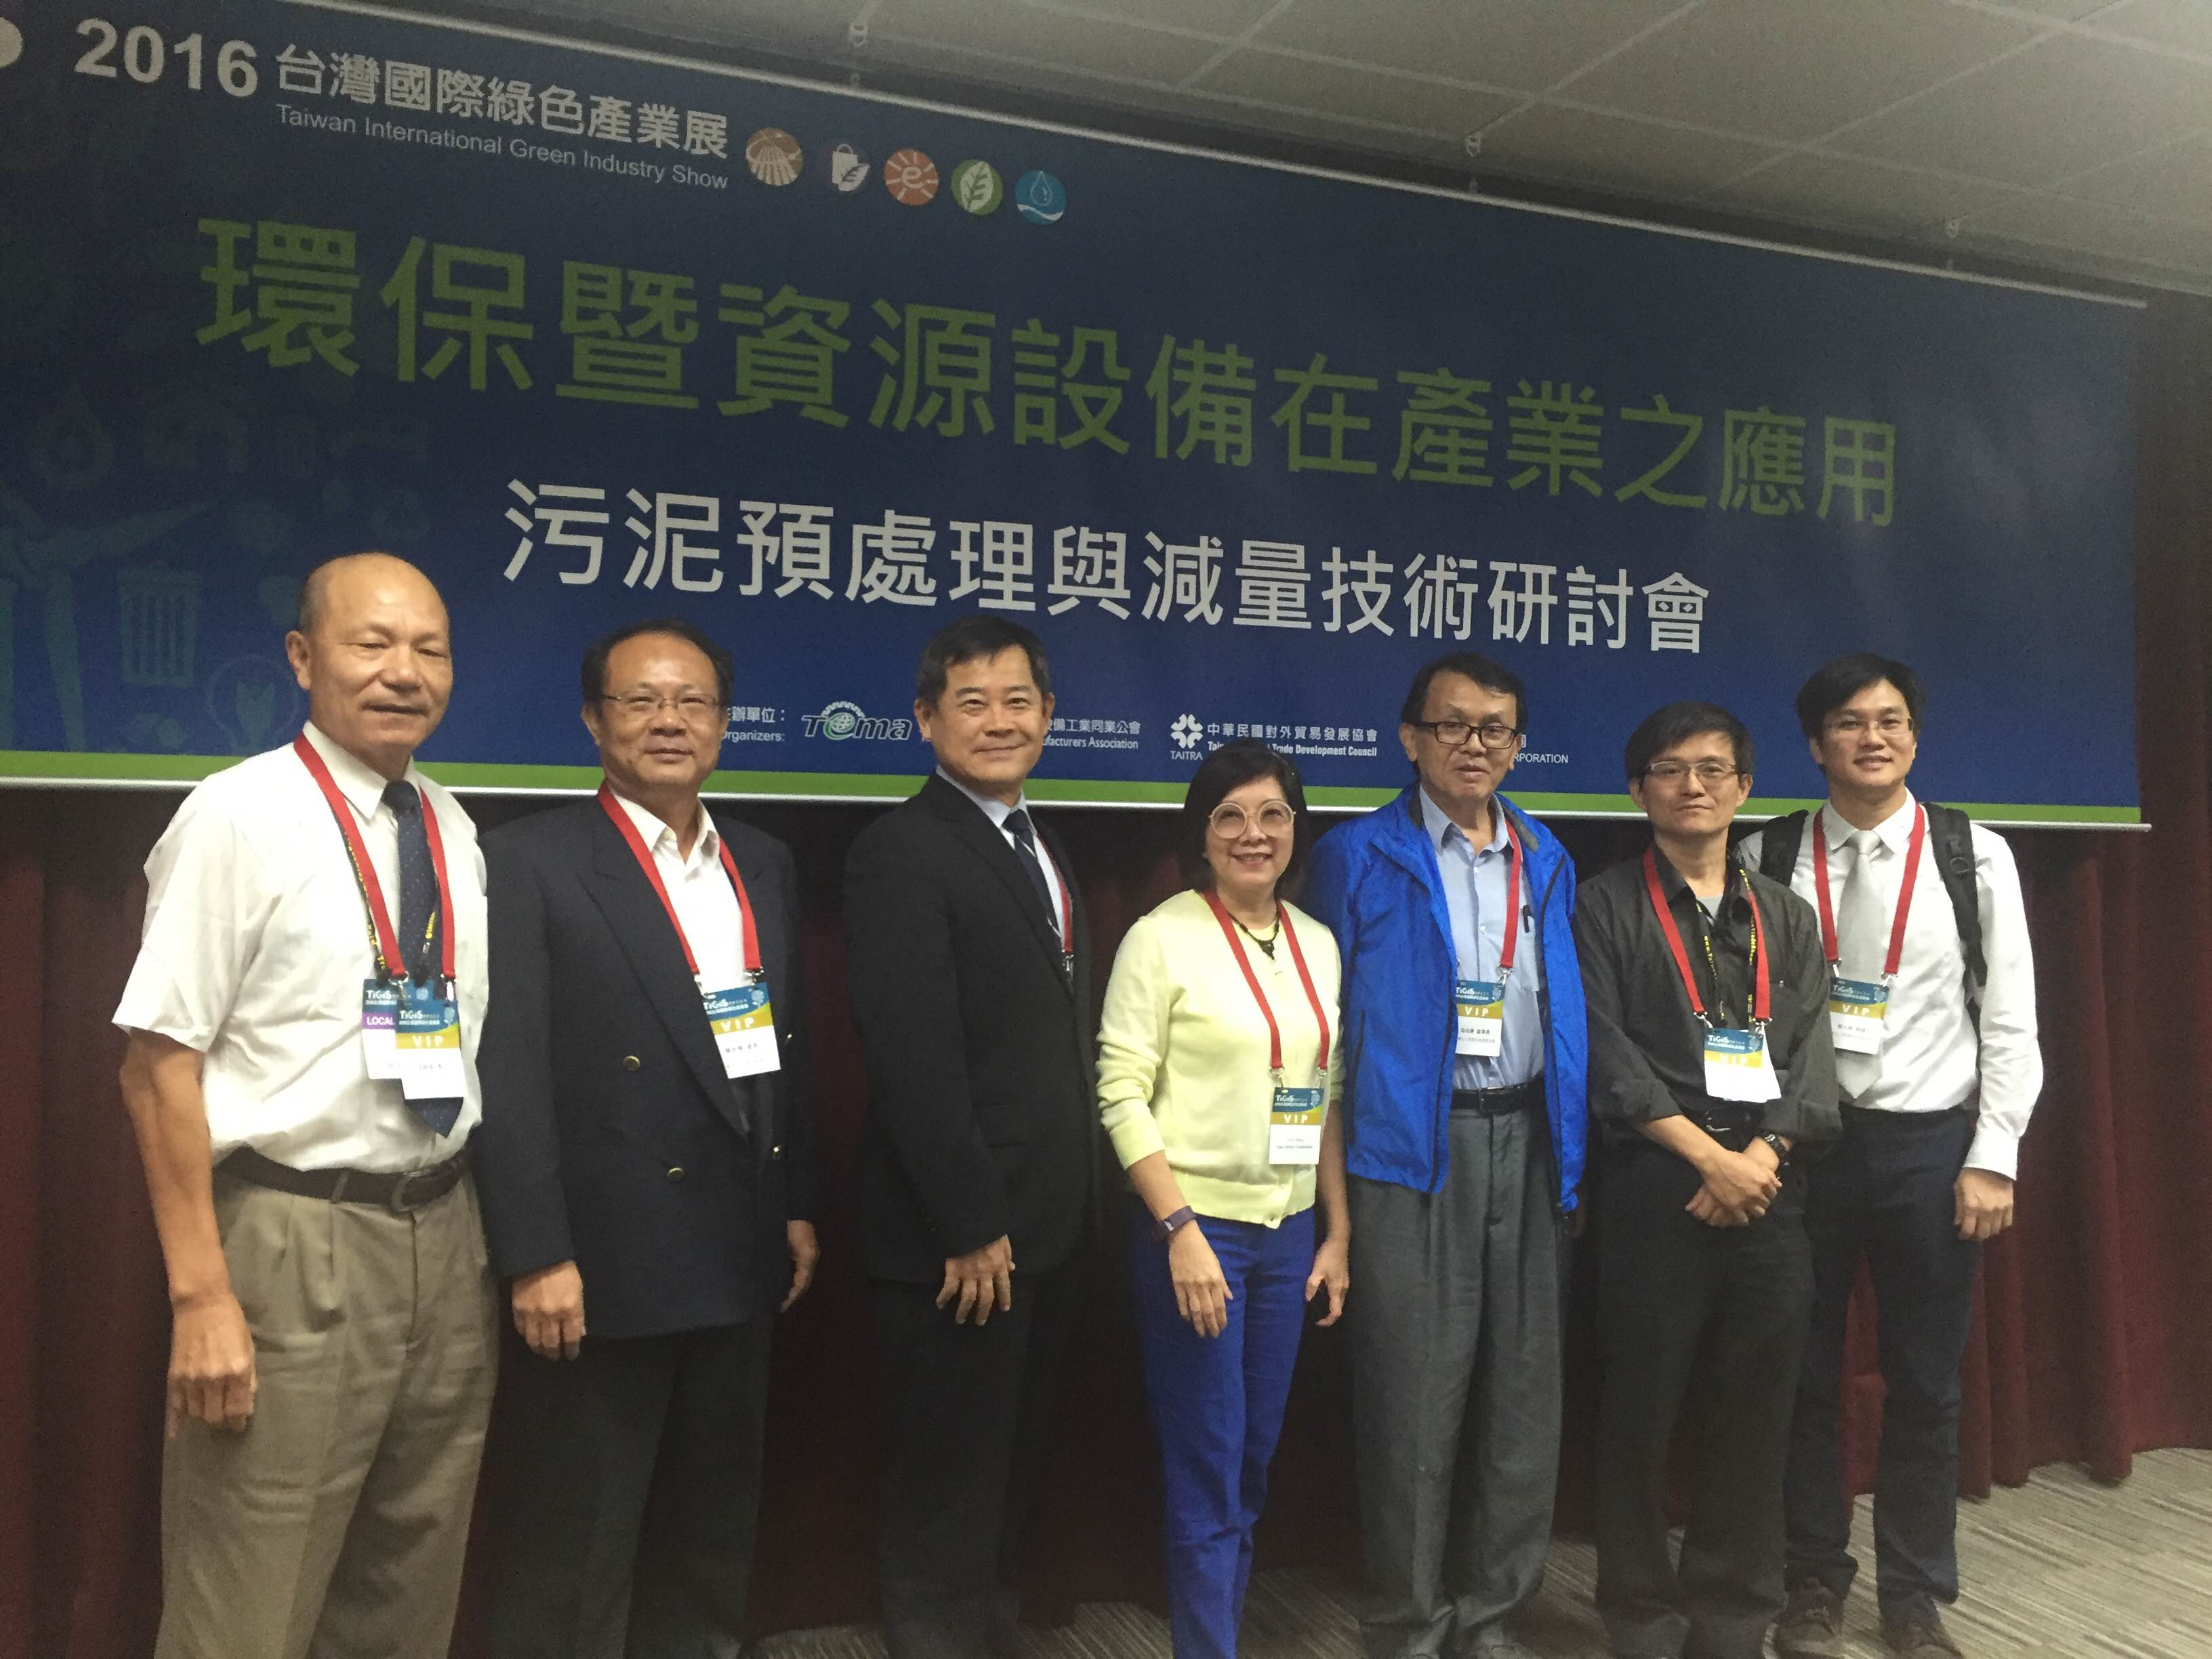 Ultrawaves' Partner HVI auf der Taiwan International Green Industry Show